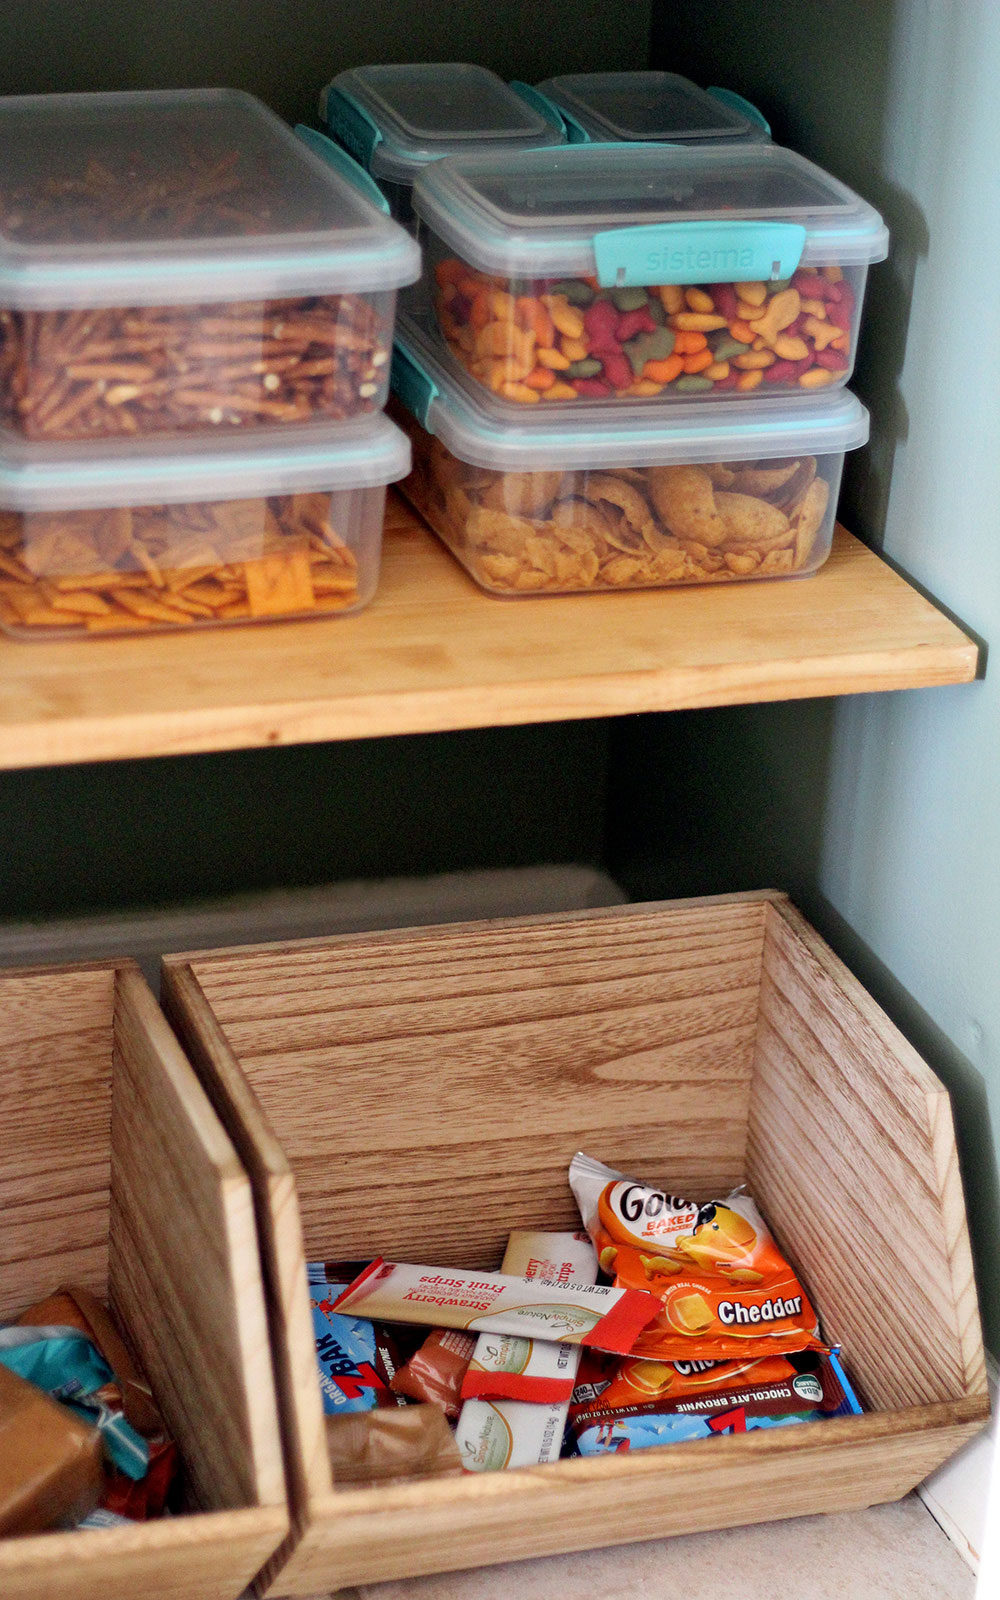 use containers that stack | practical tips for storing more in a kitchen pantry